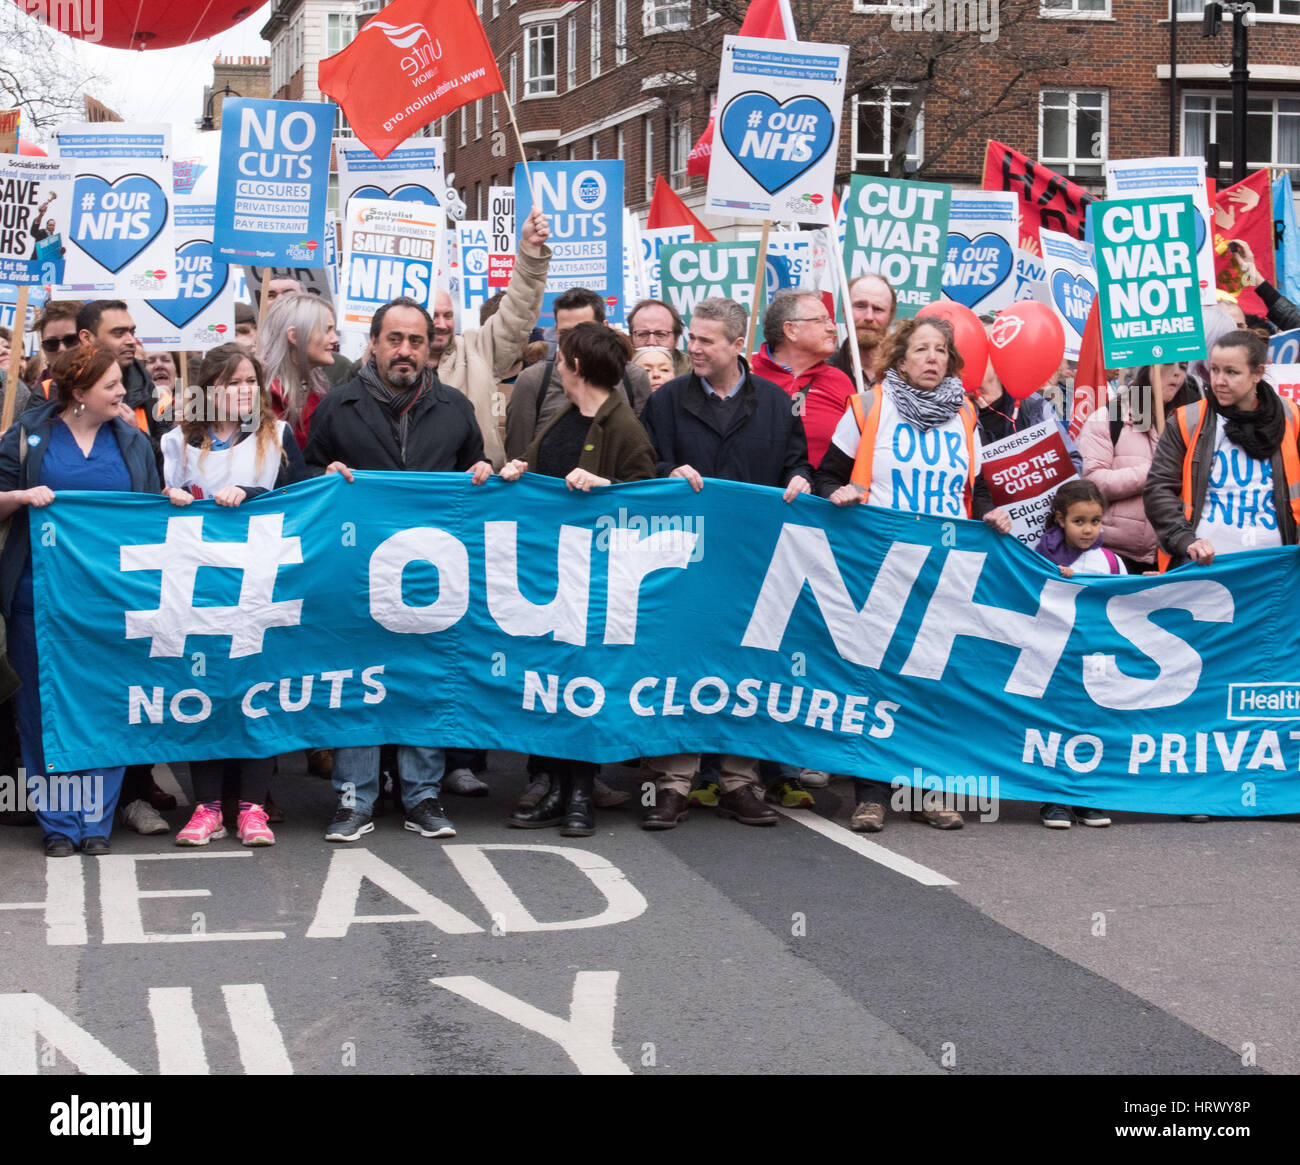 London, UK. 4th March 2017, Mass rally and march in support of the NHS in London Credit: Ian Davidson/Alamy Live - Stock Image